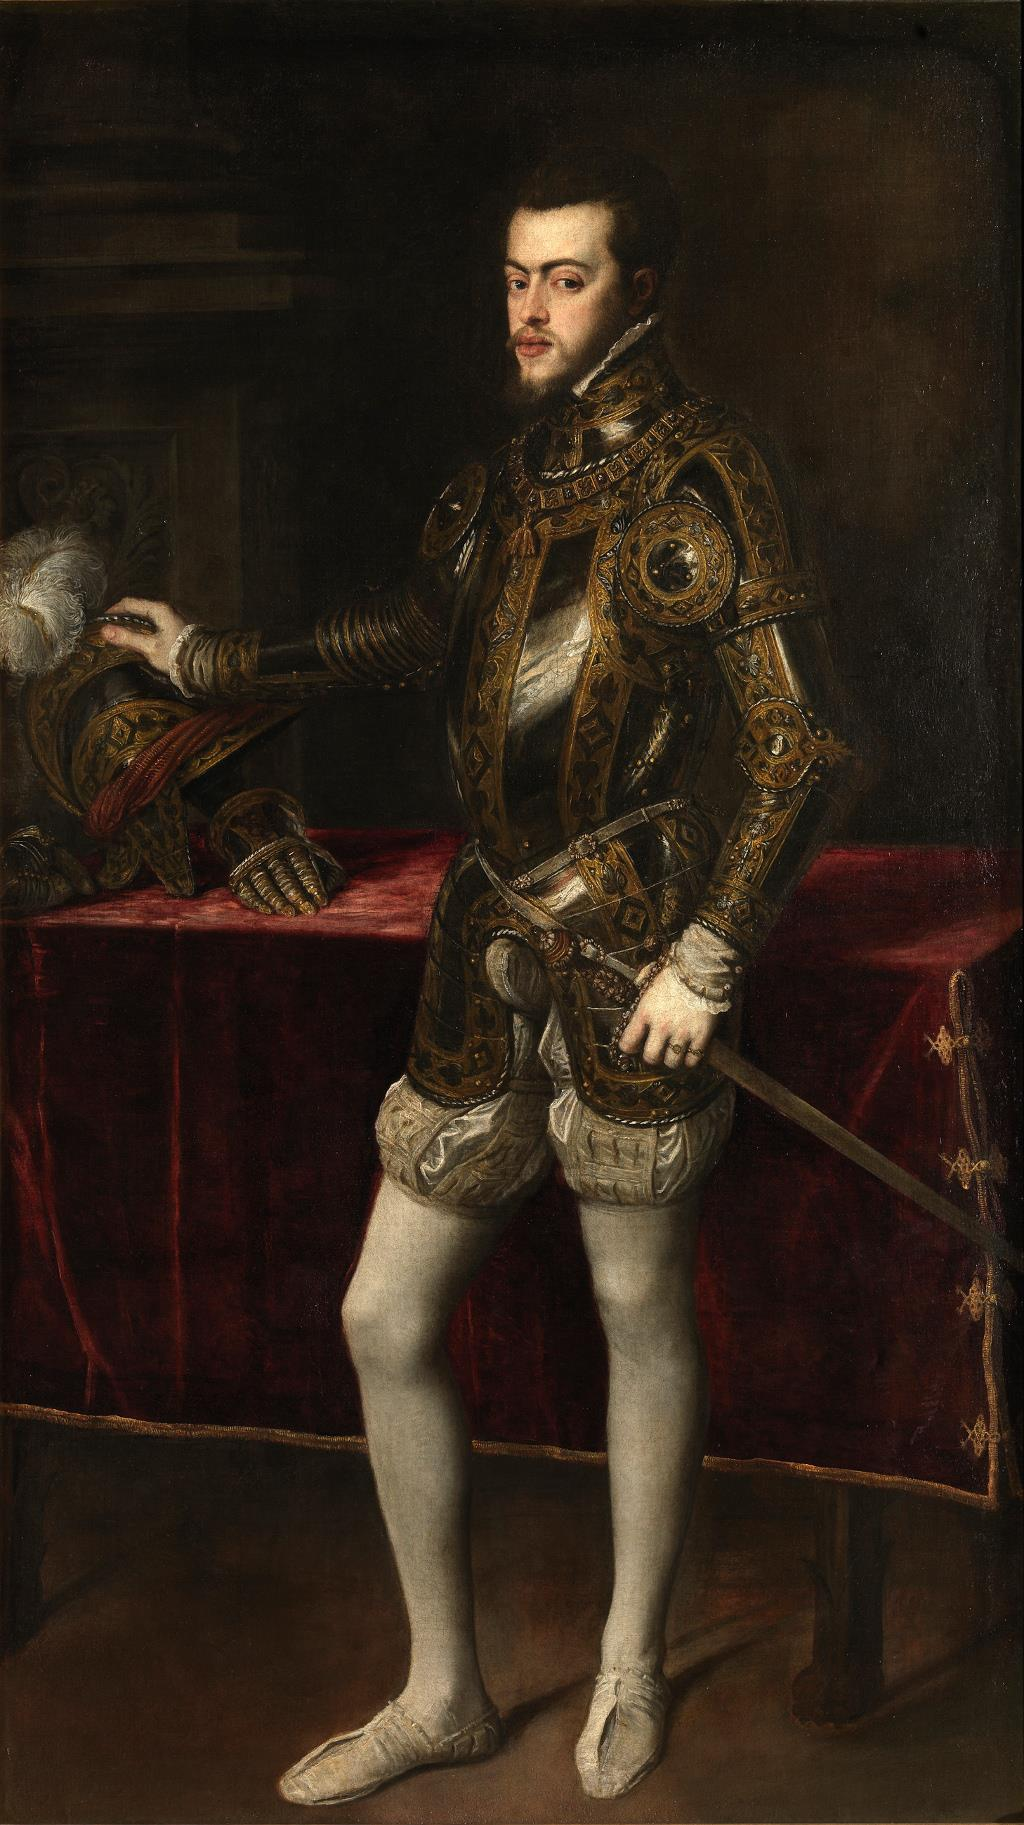 Titian and the Venetian Empire